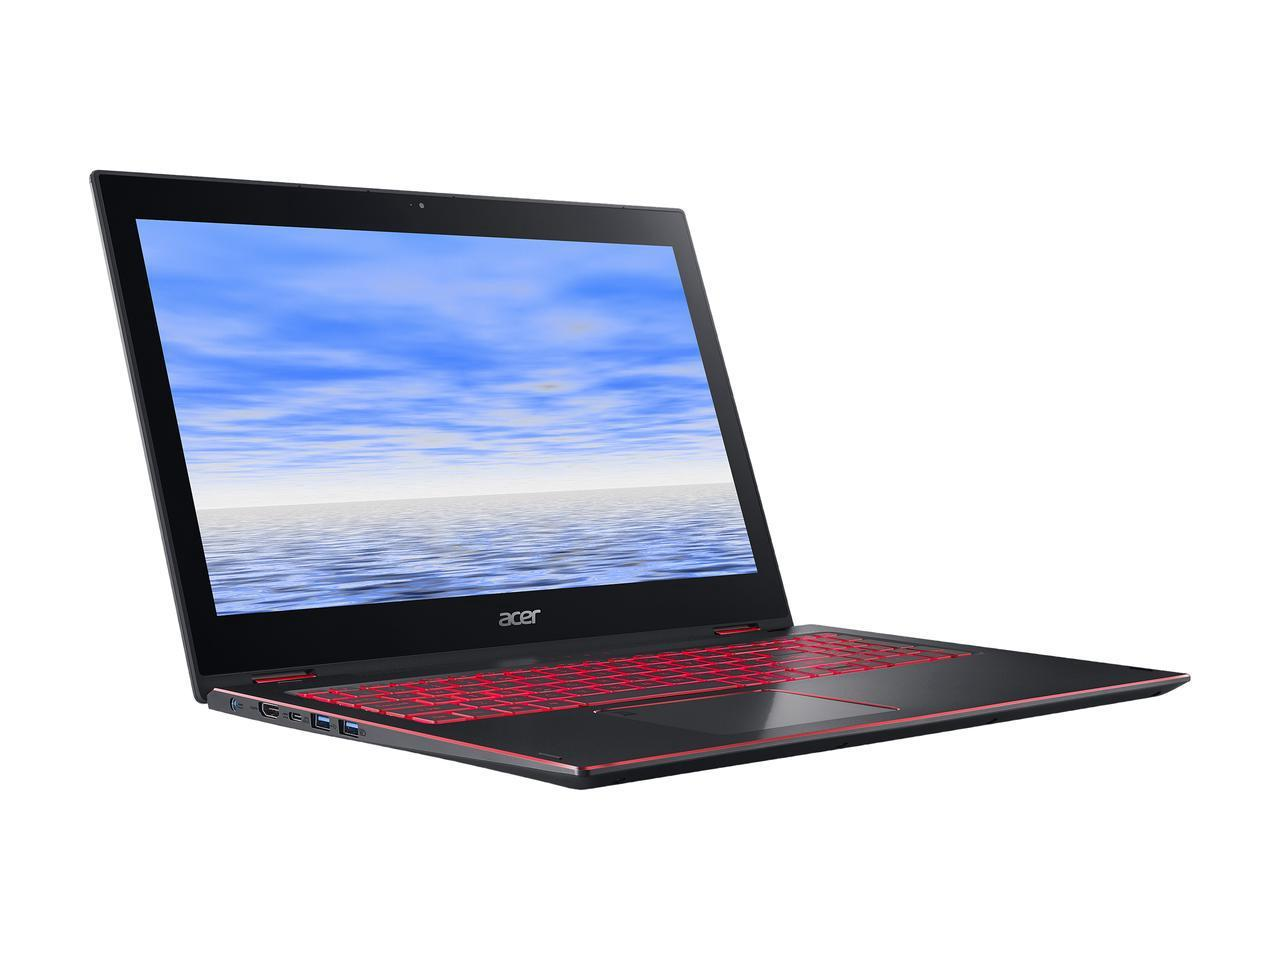 Acer Nitro 5 Spin NP515-51-887W Intel Core i7 8th Gen 8550U (1.80 GHz) 8 GB Memory 1 TB HDD NVIDIA GeForce GTX 1050... by Acer